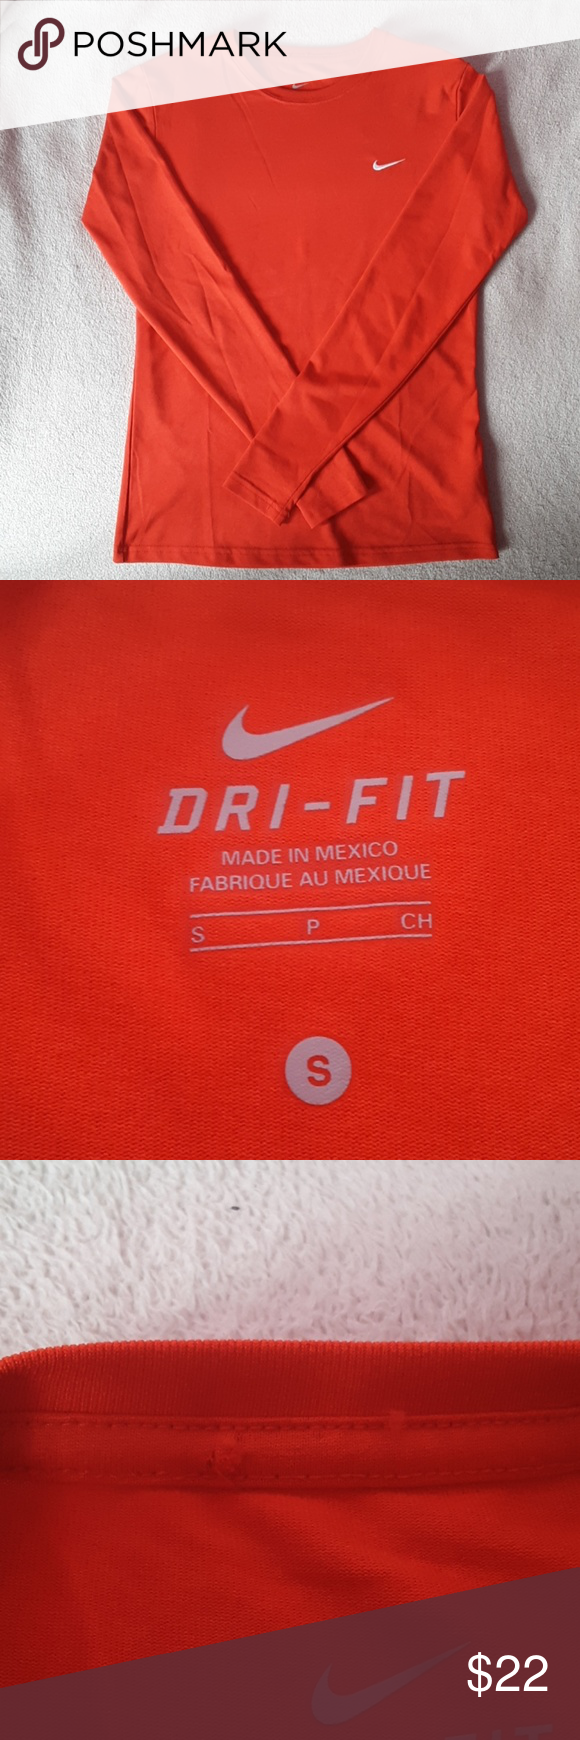 Nike Dri Fit Red Long Sleeve *Nike Dri Fit *Long sleeve *Shirt is red, some of the pictures make it look more orange! *Size Small  *About 25 inches long  *About 16.5 inches across *One tiny hole in the inside of the collar (can only been seen from the inside) *Excellent condition, no rips, stains, or signs of wear  Please let me know if you have any questions! And feel free to make an offer! Nike Tops Tees - Long Sleeve #niketops